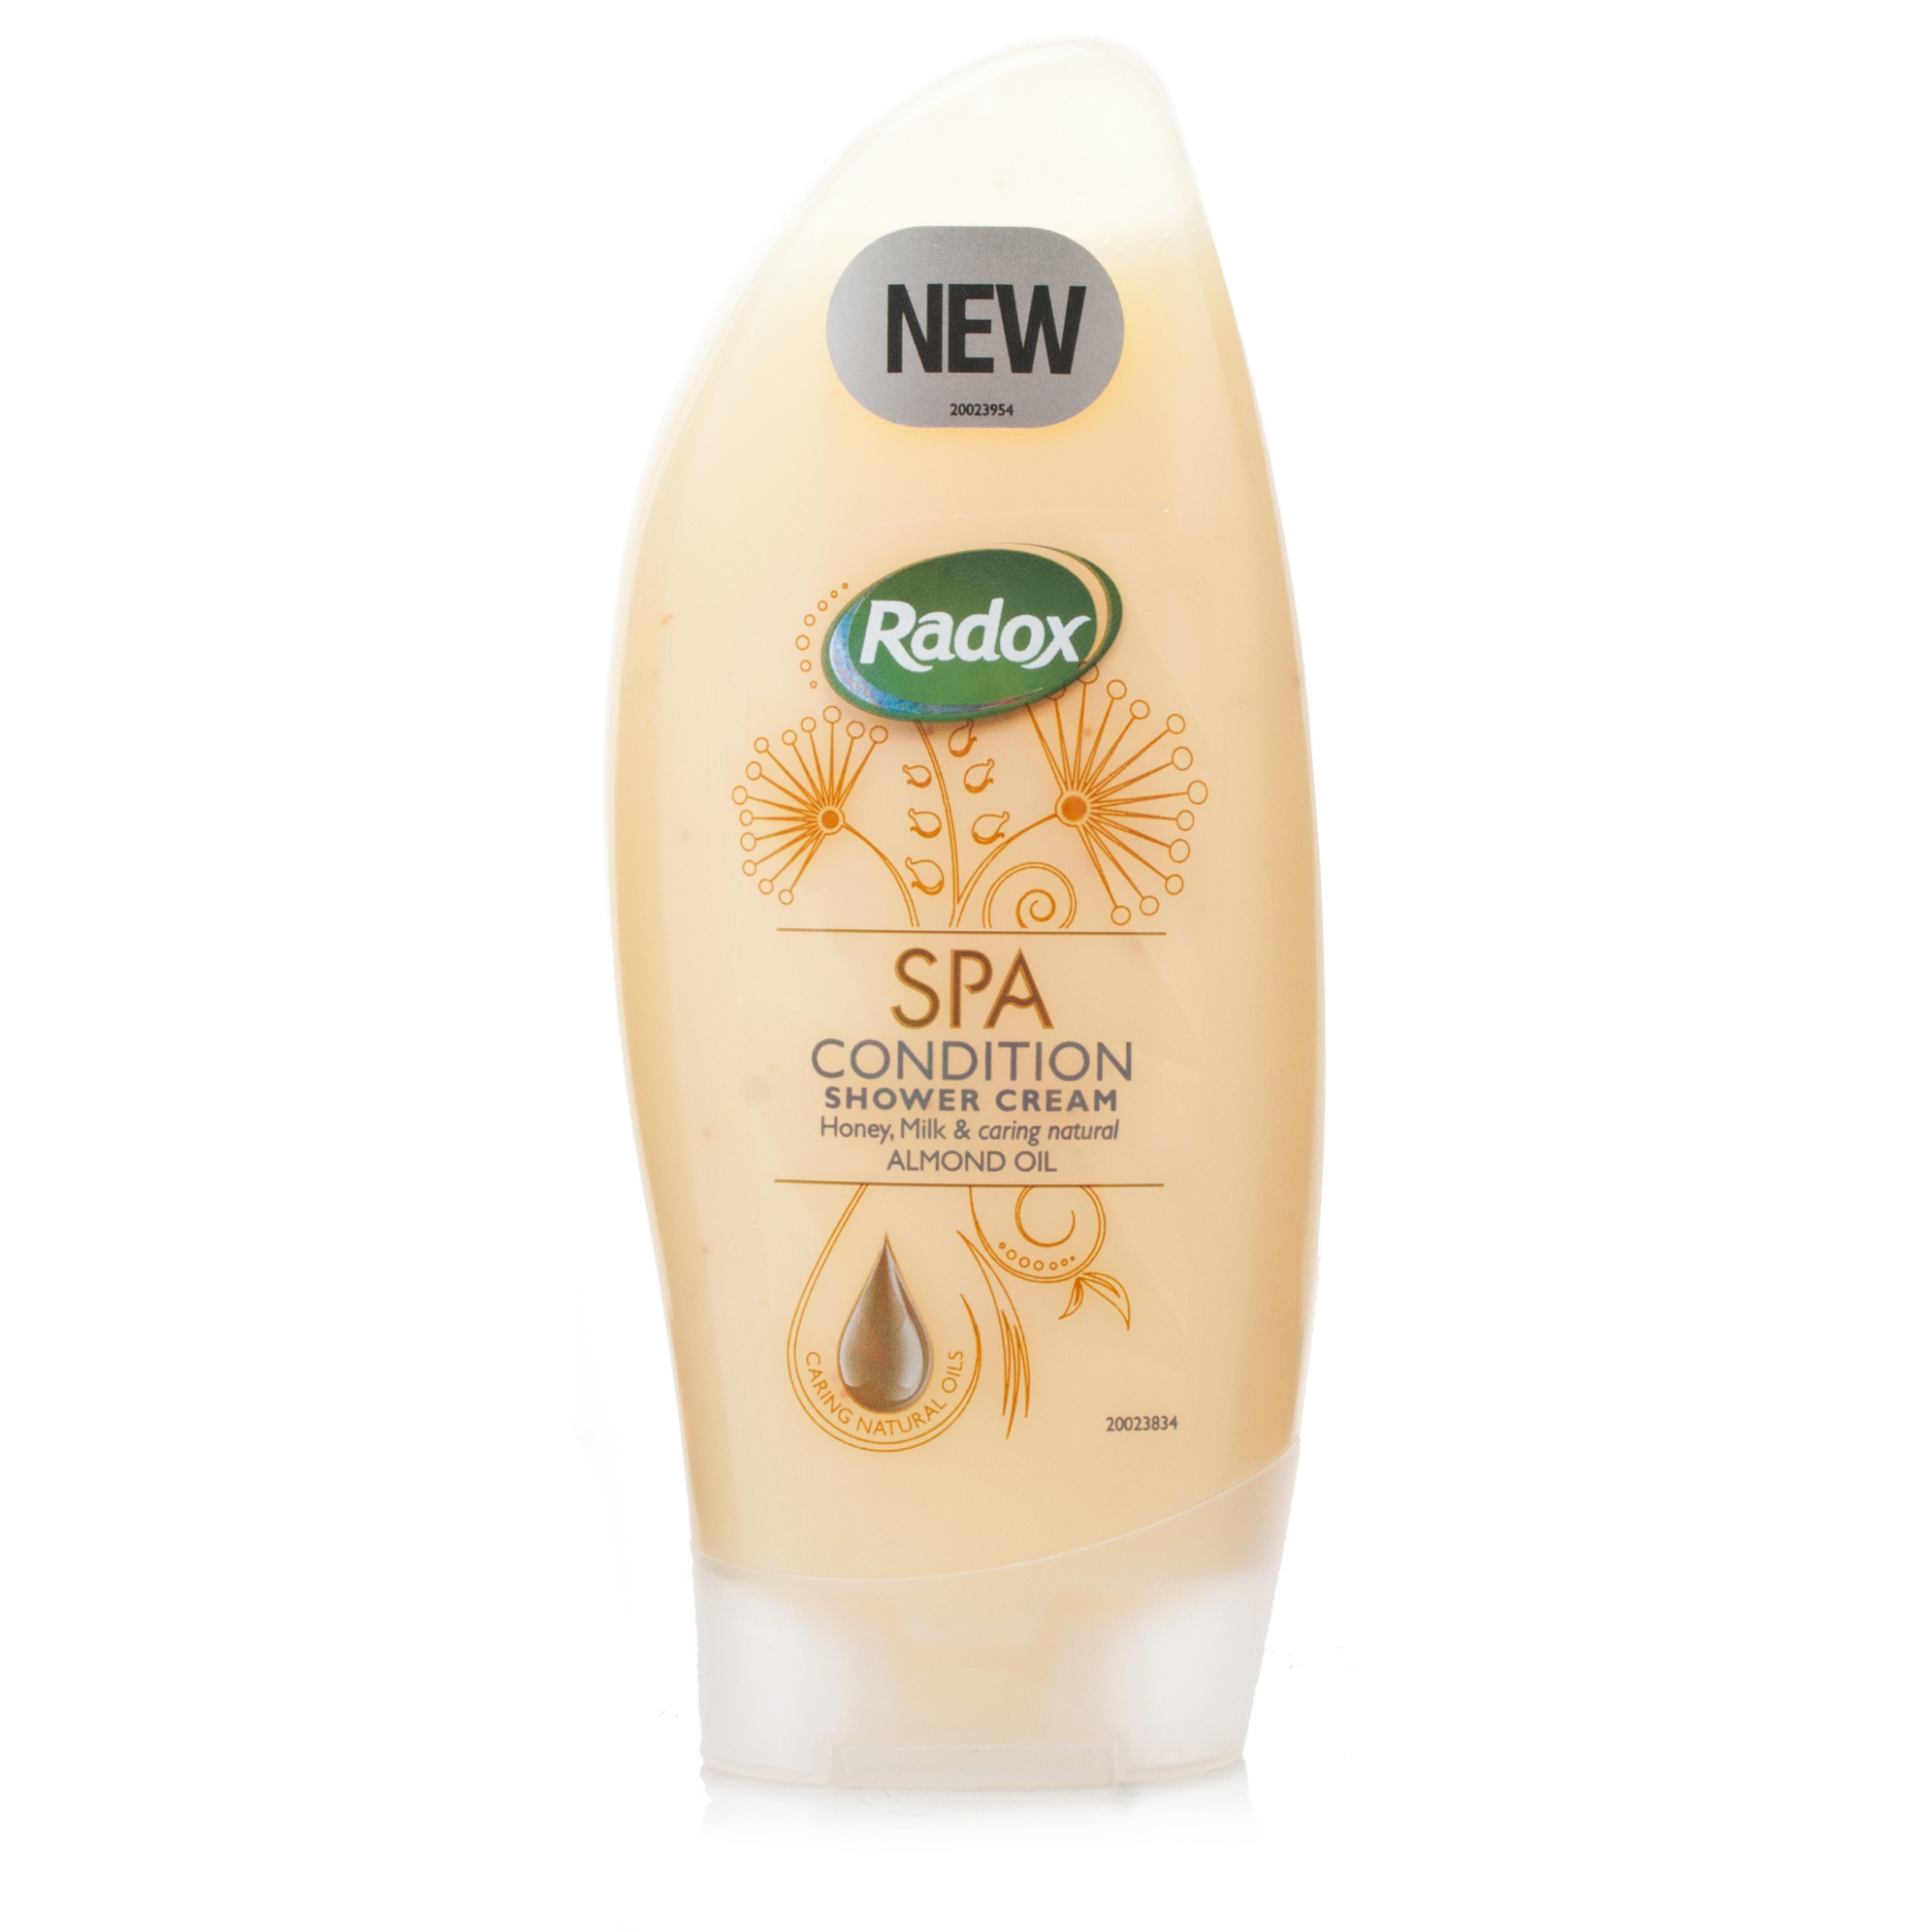 Radox Spa Condition Shower Cream